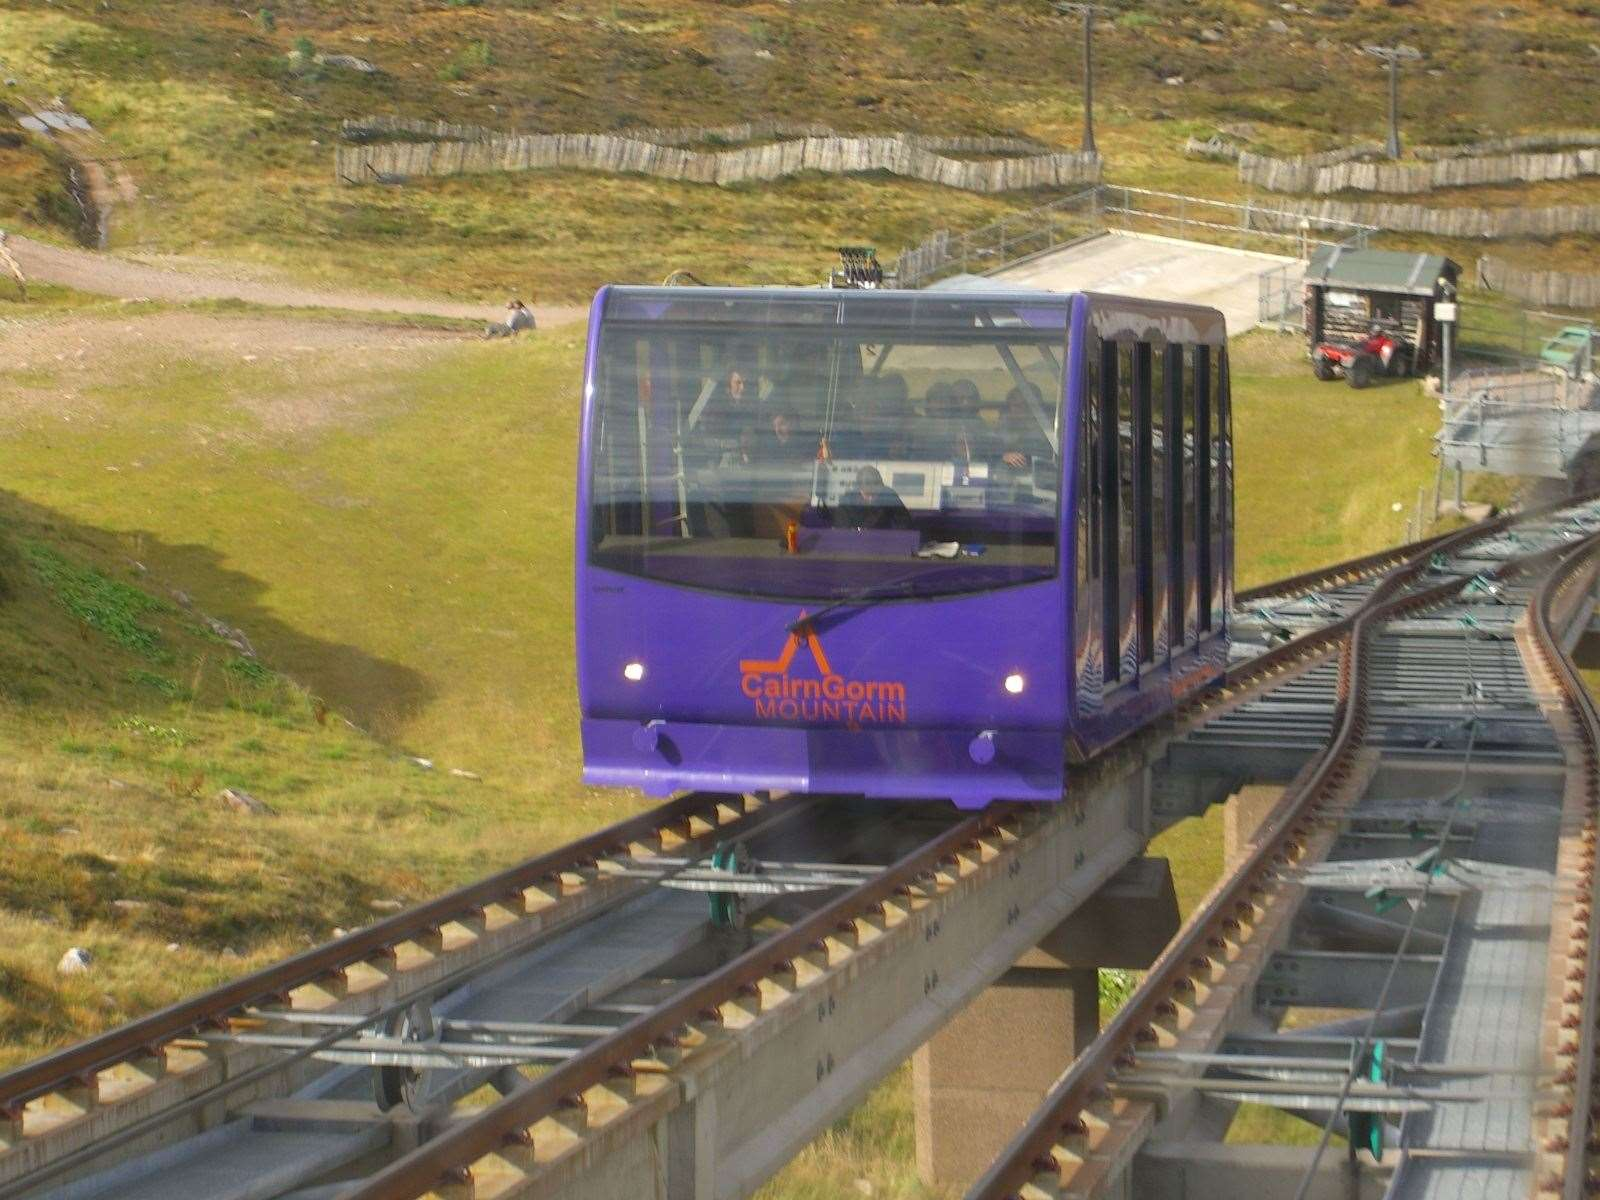 The funicular railway, which is currently out of service, on Cairngorm Mountain.